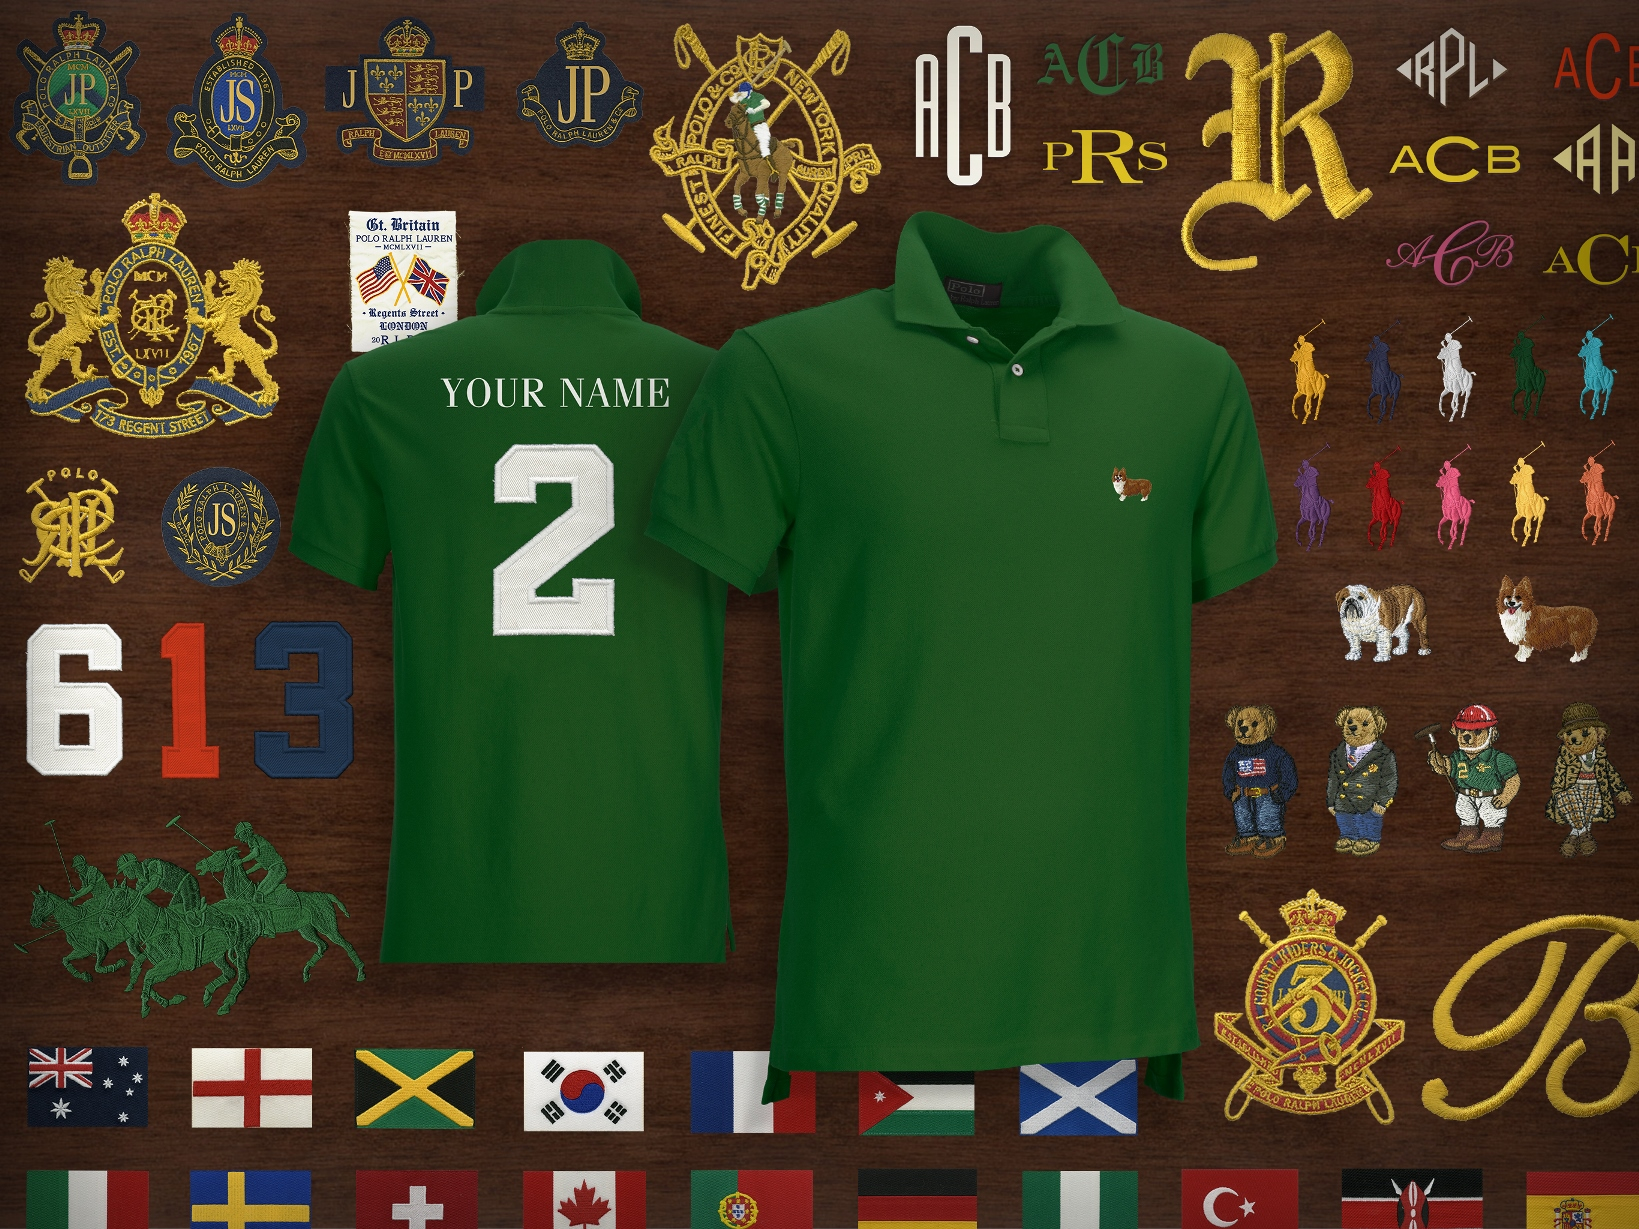 Customizable items created for Ralph Lauren's Regent street store.